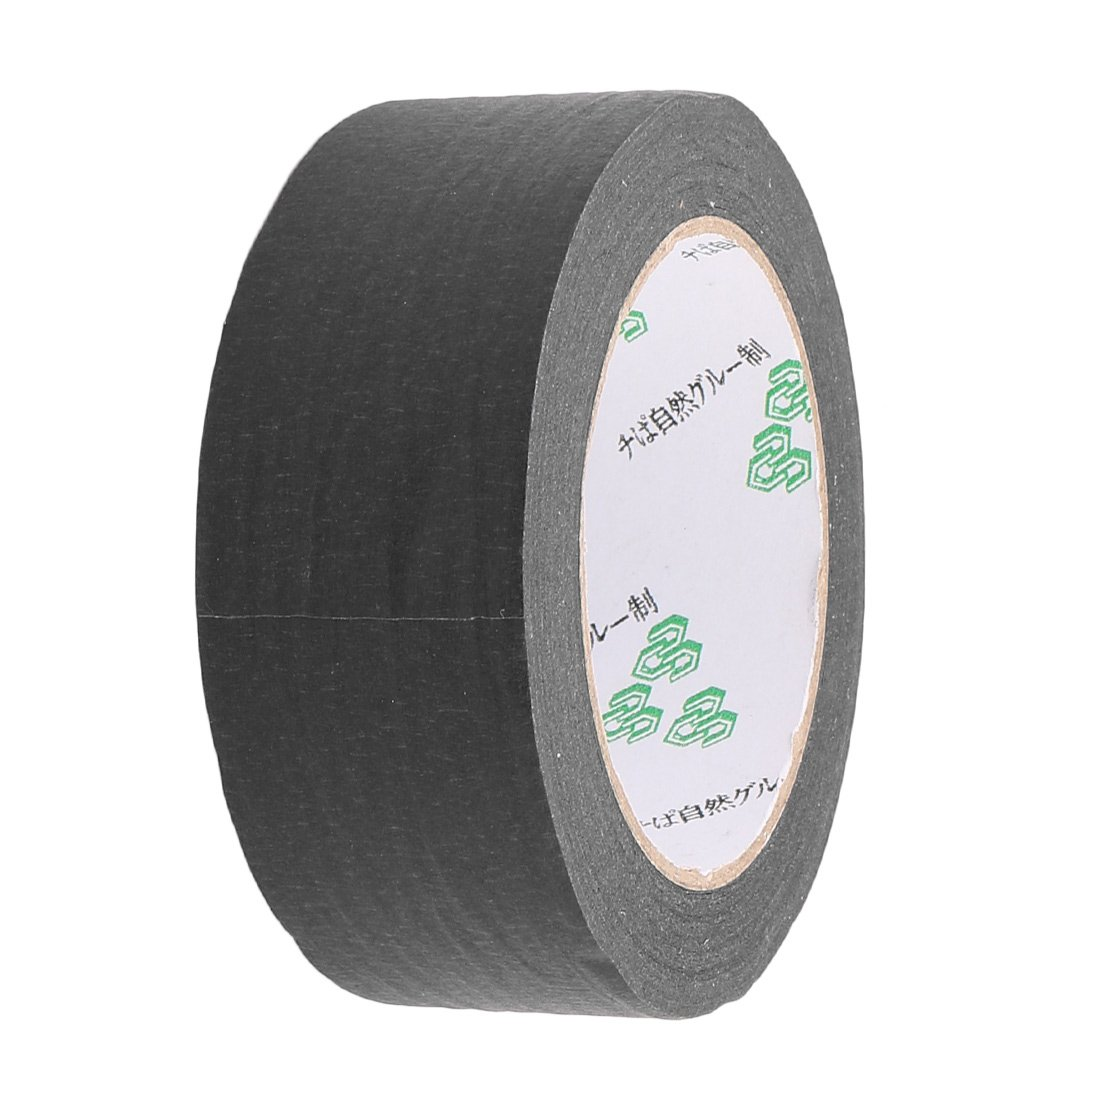 uxcell Crepe Paper Black Easy Release Painters Masking Tape 55 yds Length x 2'' Width